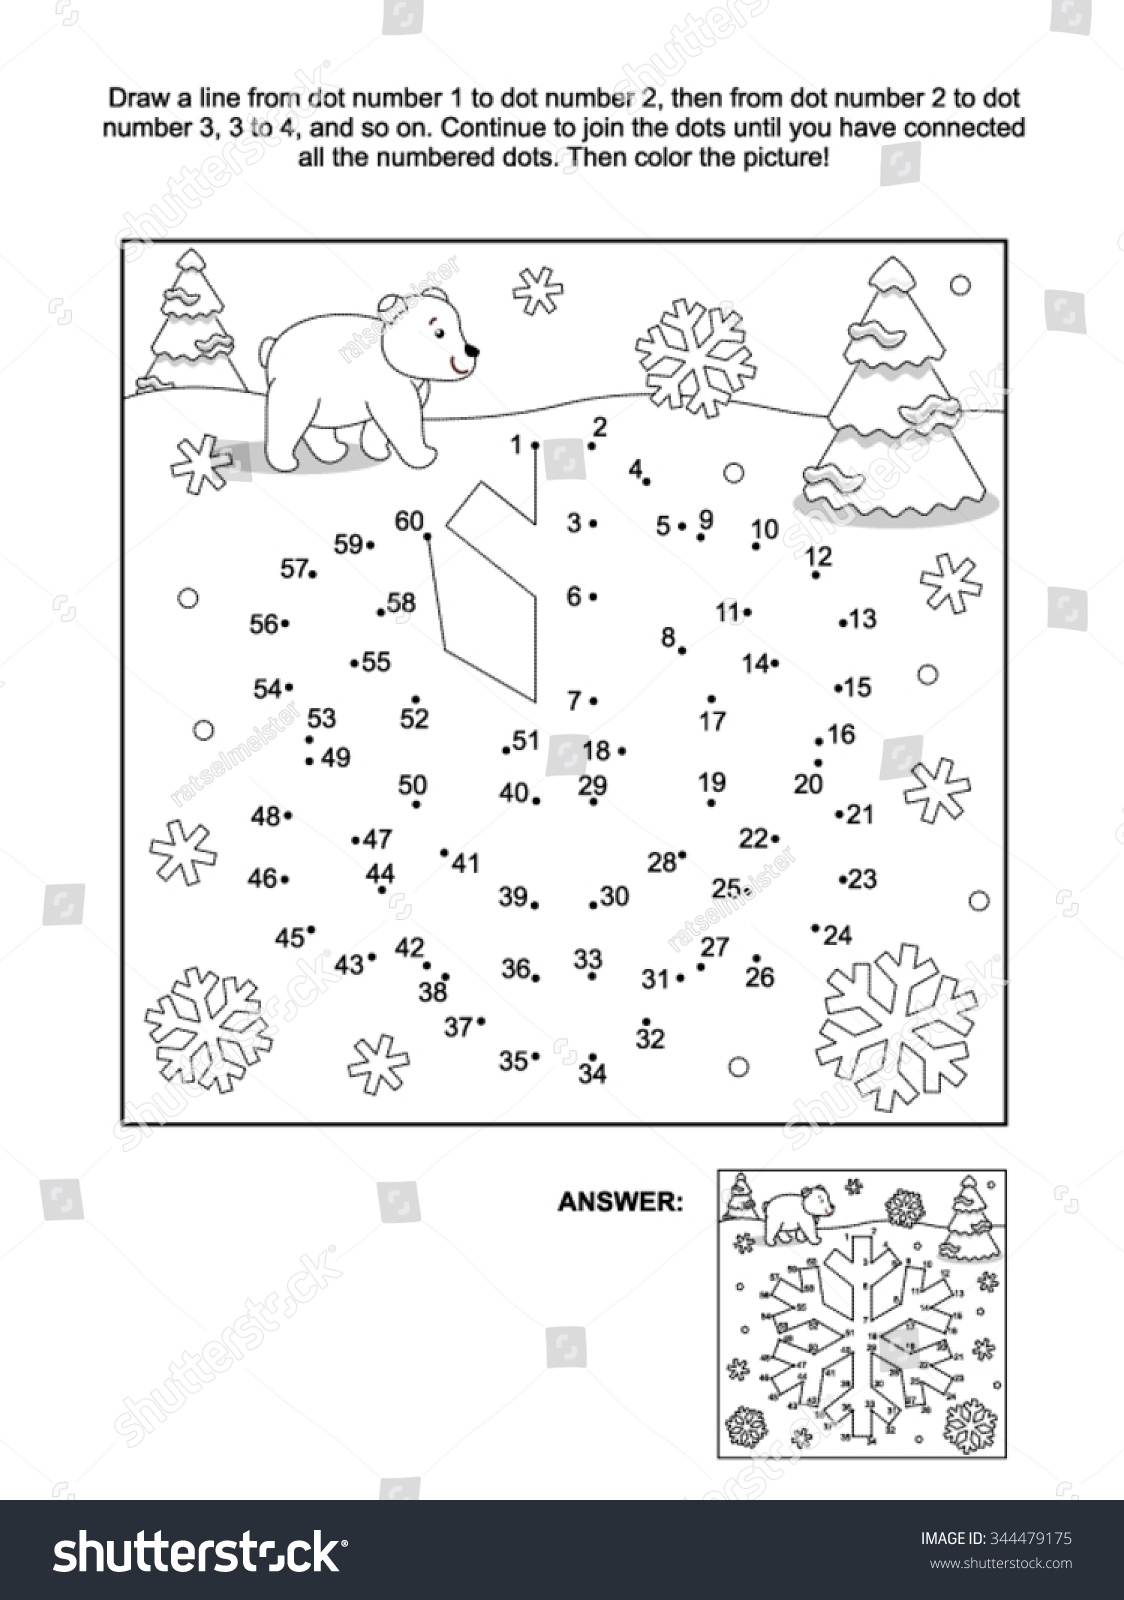 Winter New Year Or Christmas Themed Connect The Dots Picture With Coloring Pages